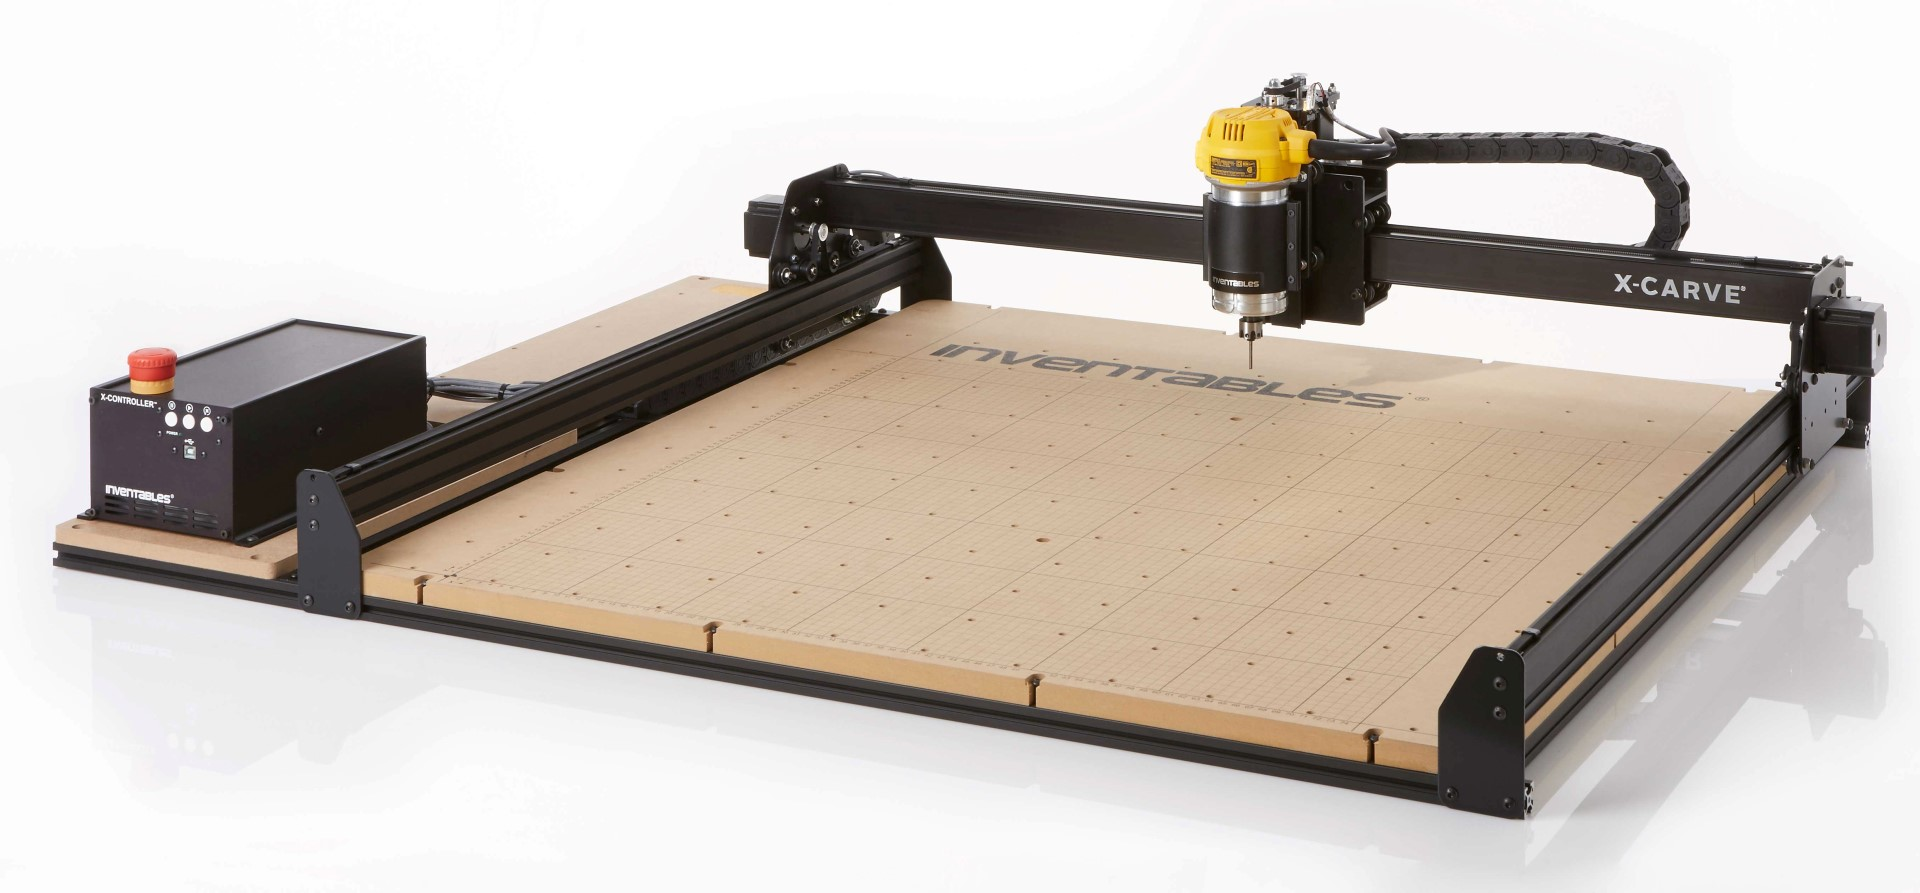 Inventables X-Carve Large Crop